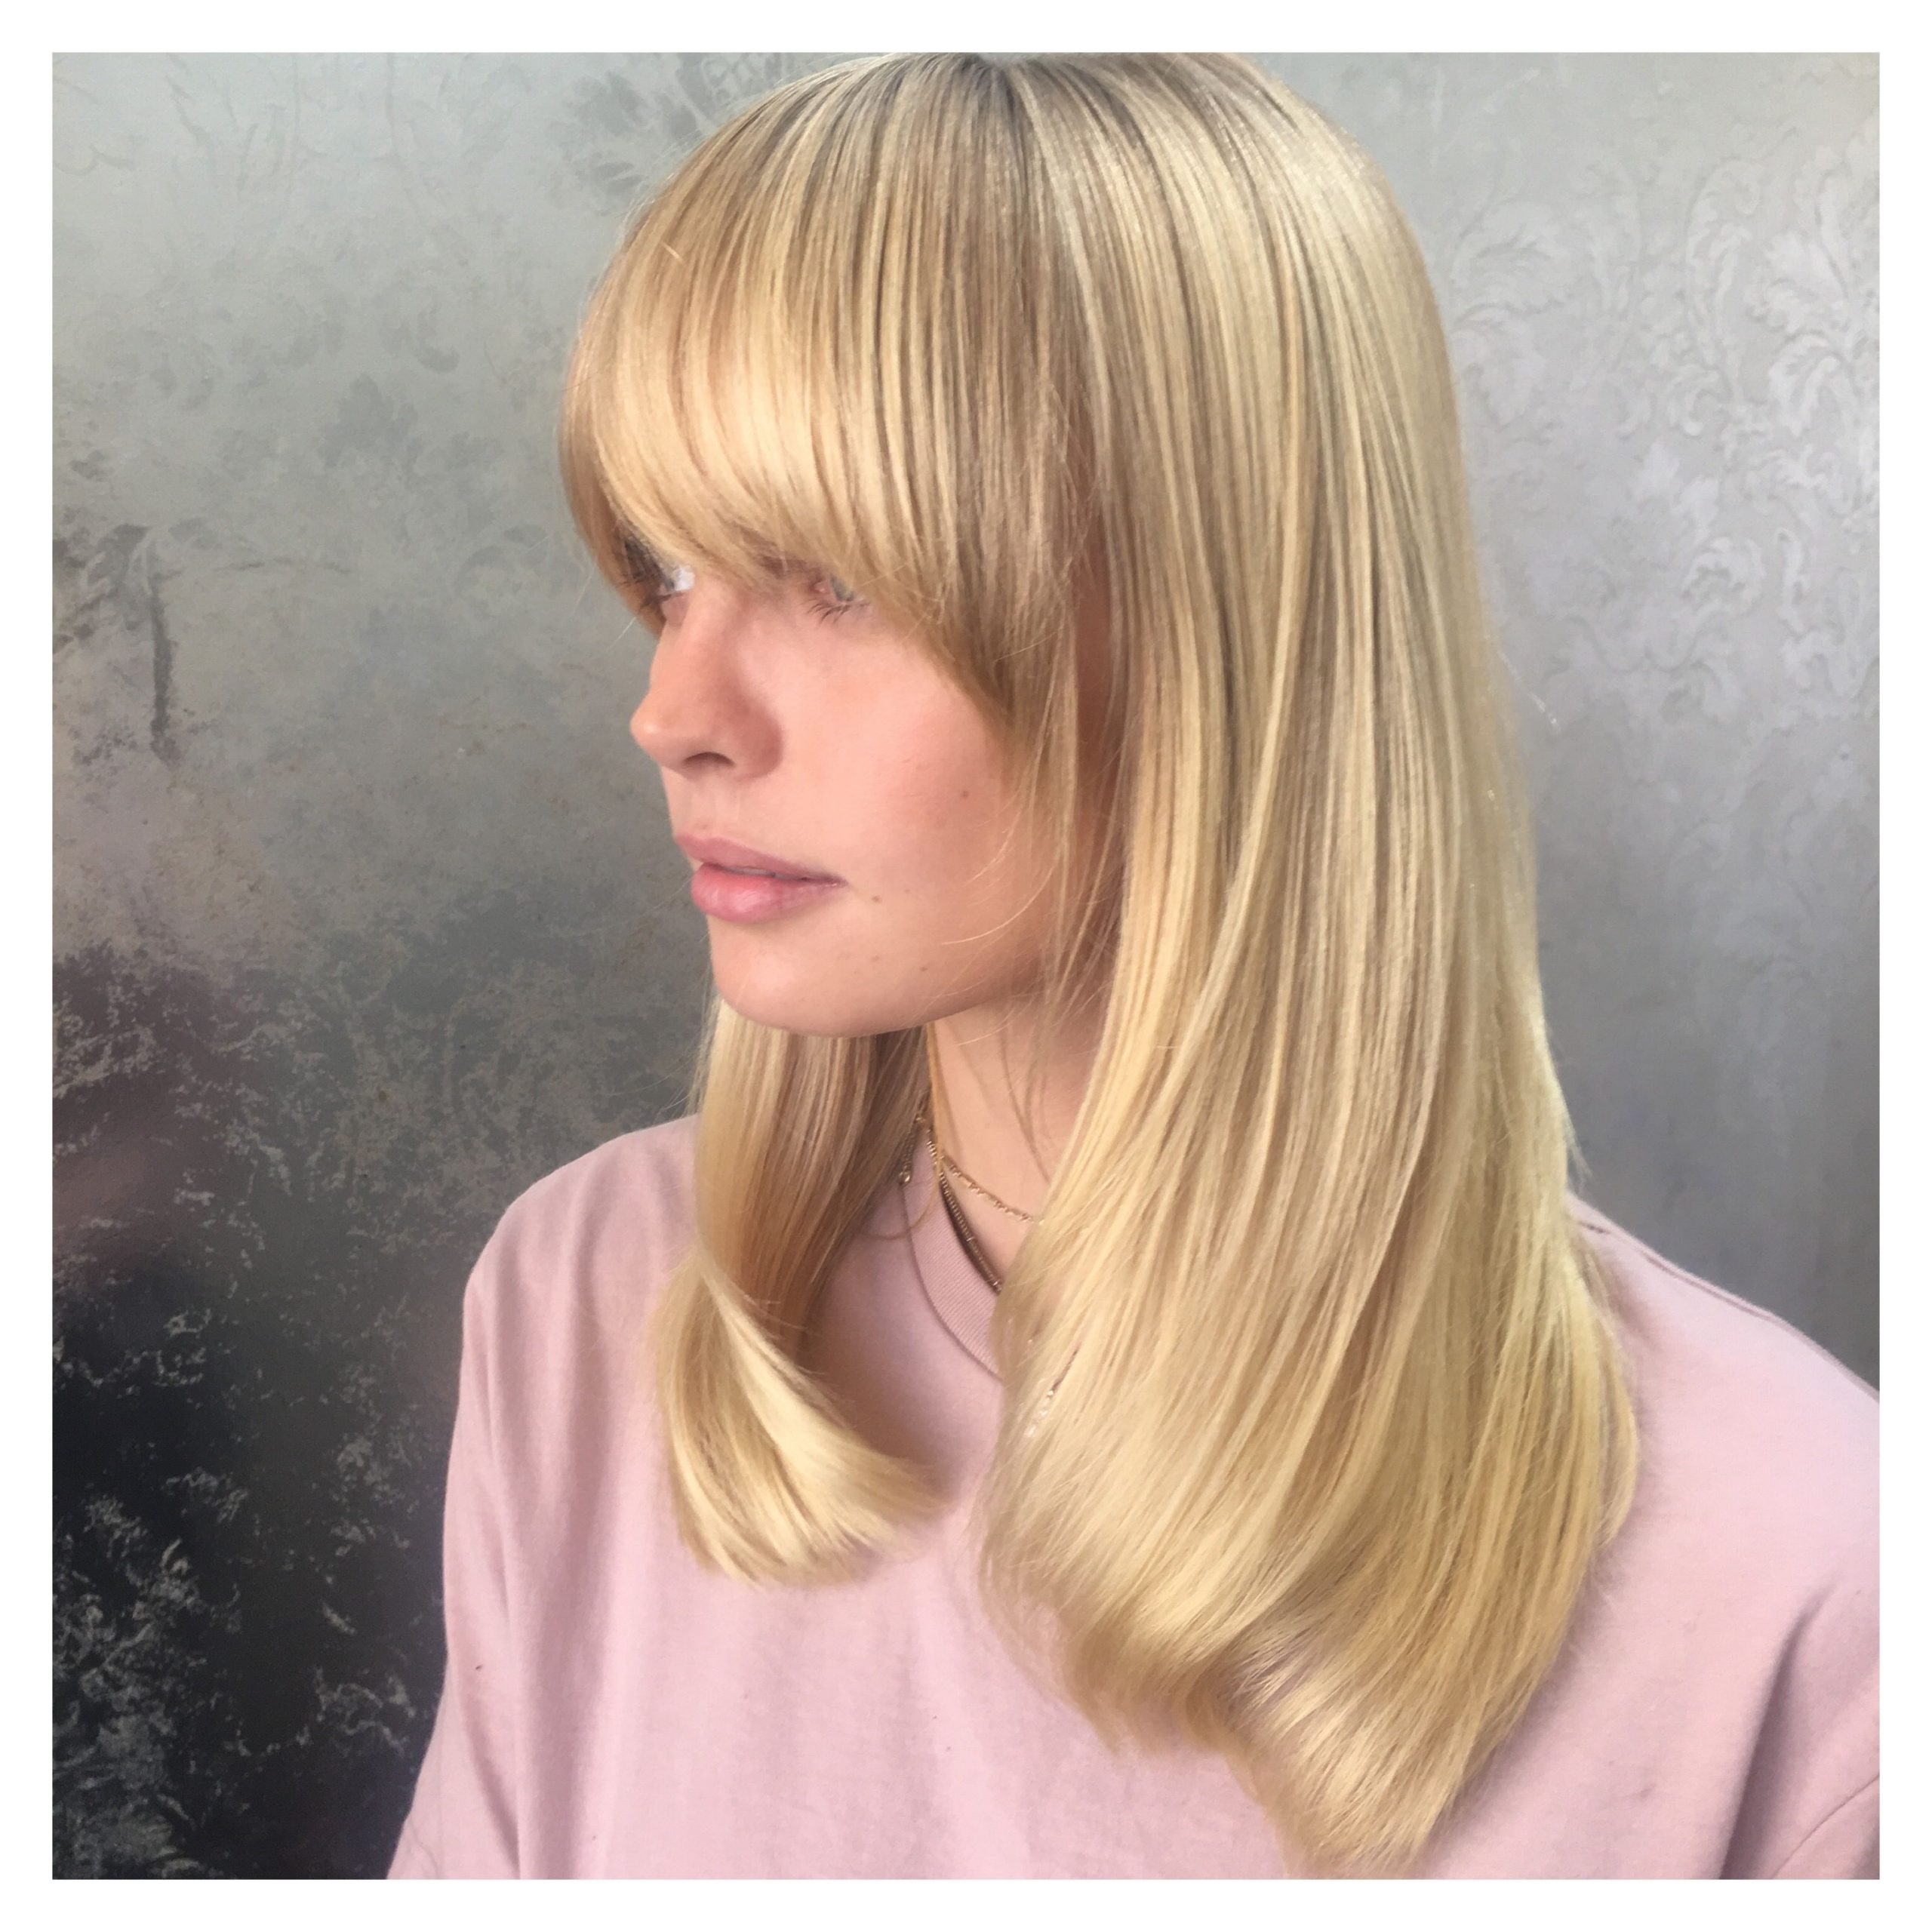 Current Perfect Bangs And Wild Layers Hairstyles Intended For Popular International Hair Trends And Haircuts (View 9 of 20)